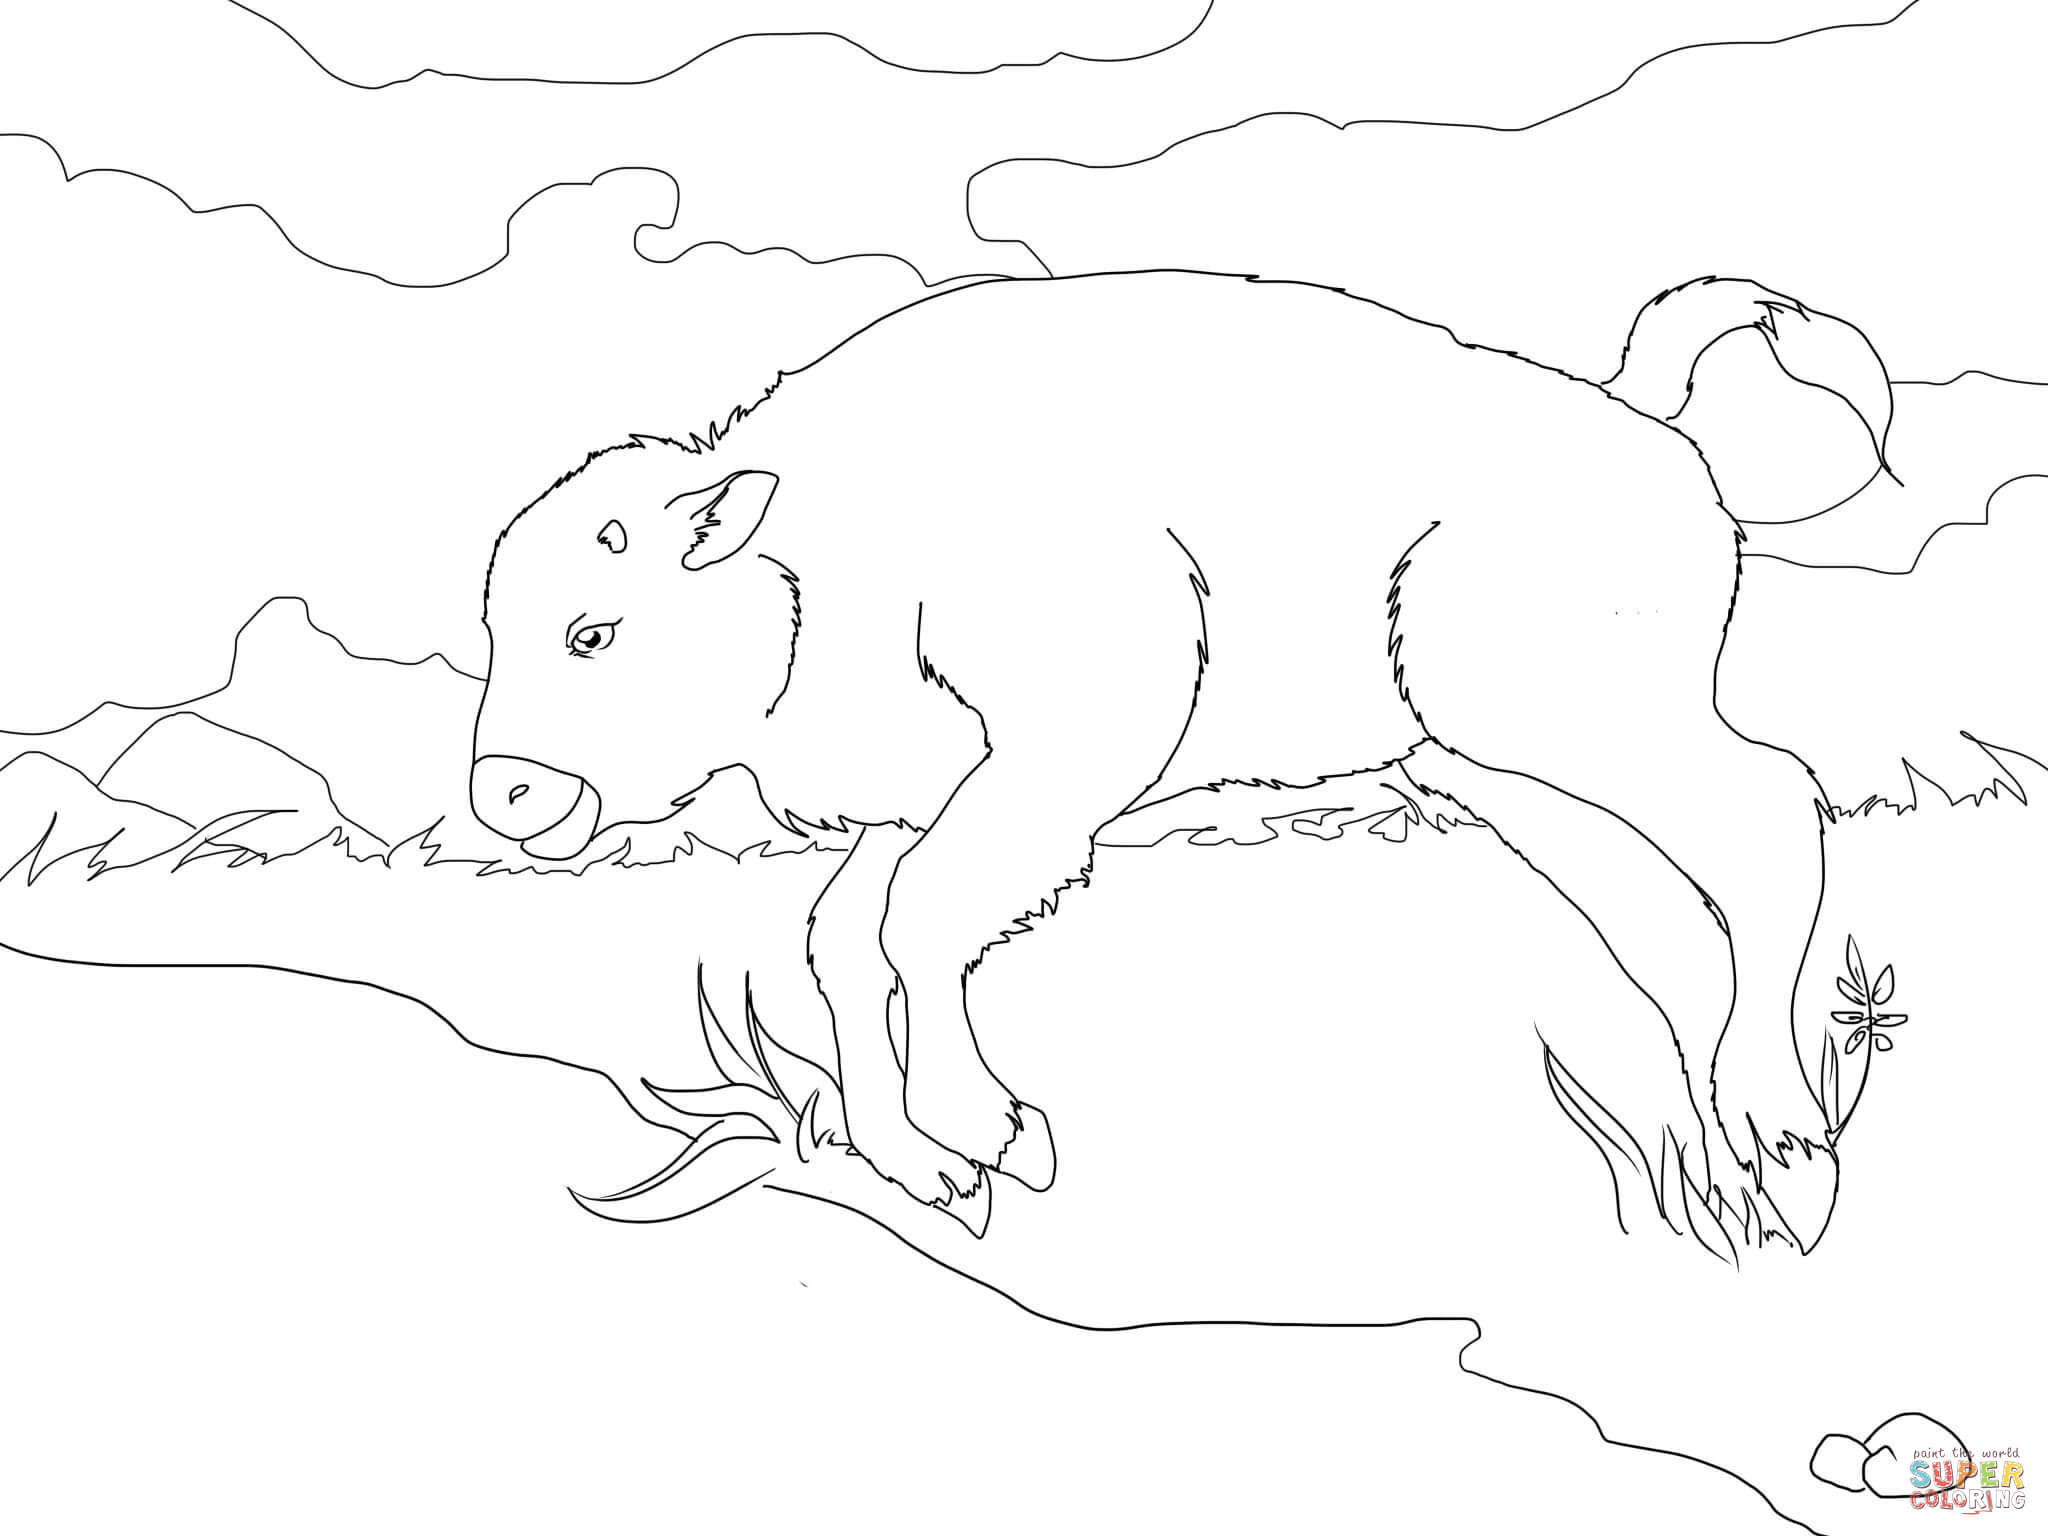 Bison clipart baby bison. Coloring page free printable